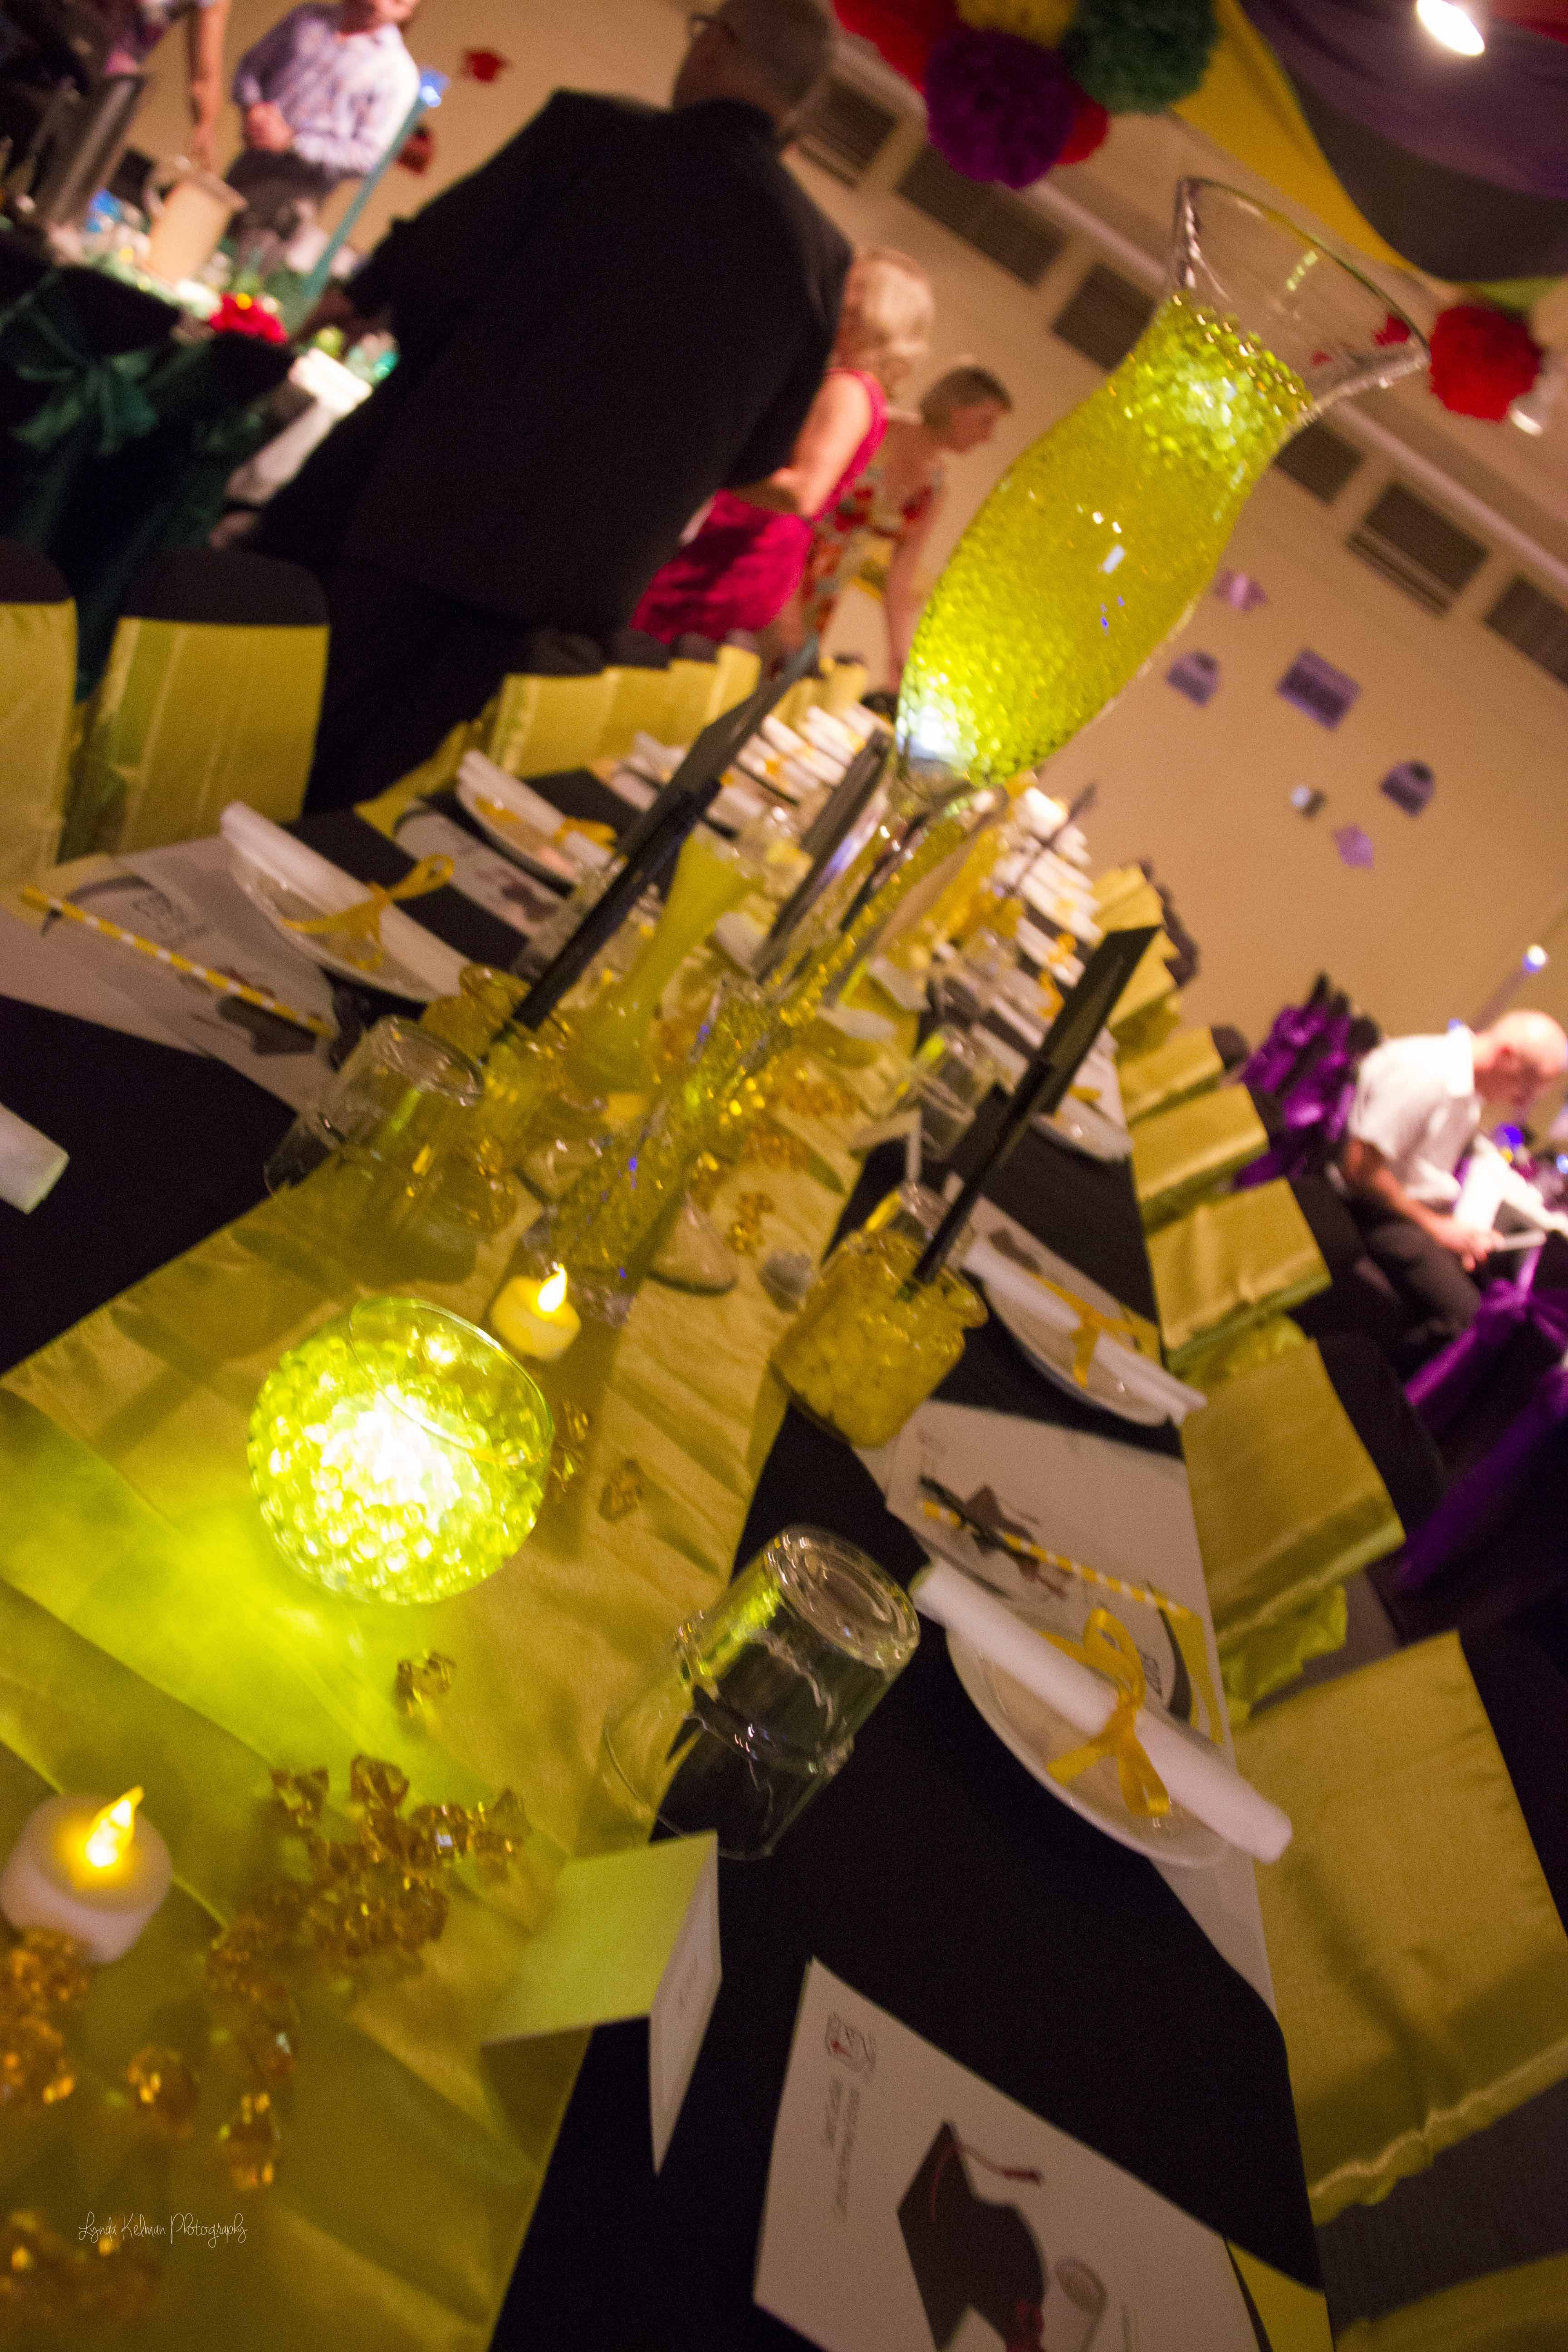 My chair covers and sashes table runners and glass centrepieces